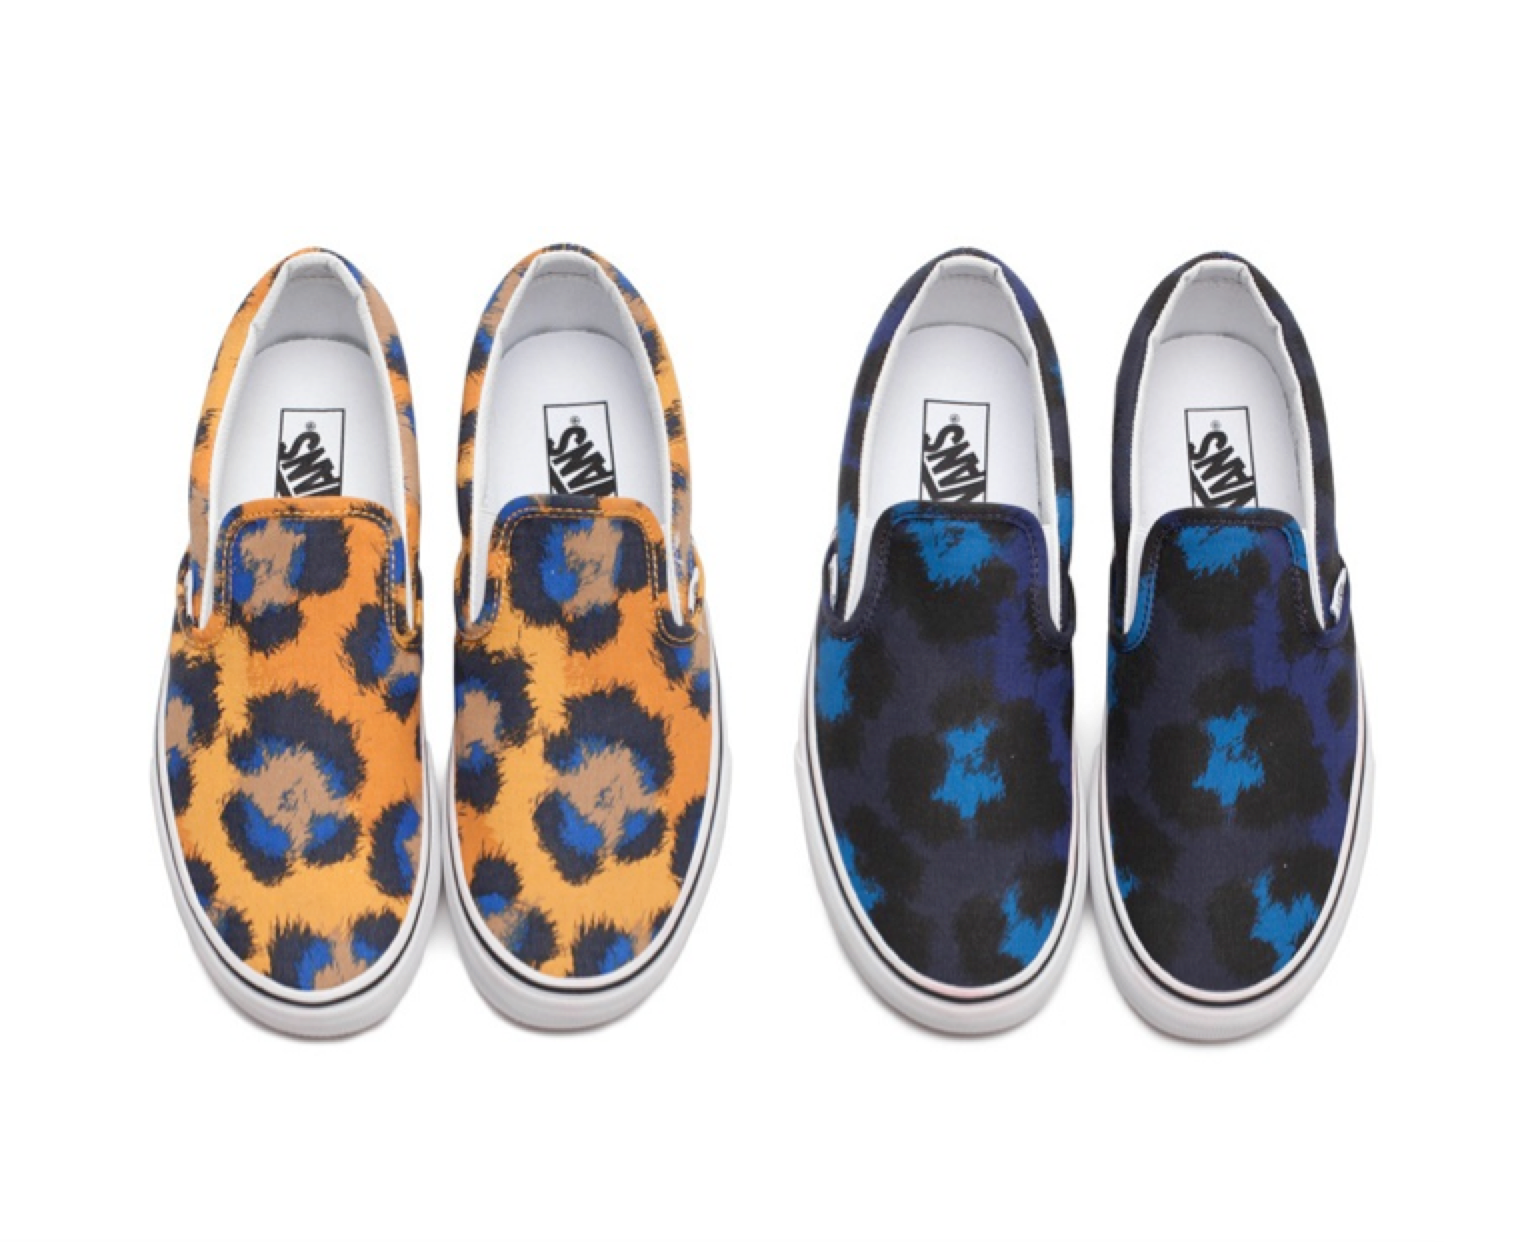 Kenzo x Vans shoes collaboration Leopard